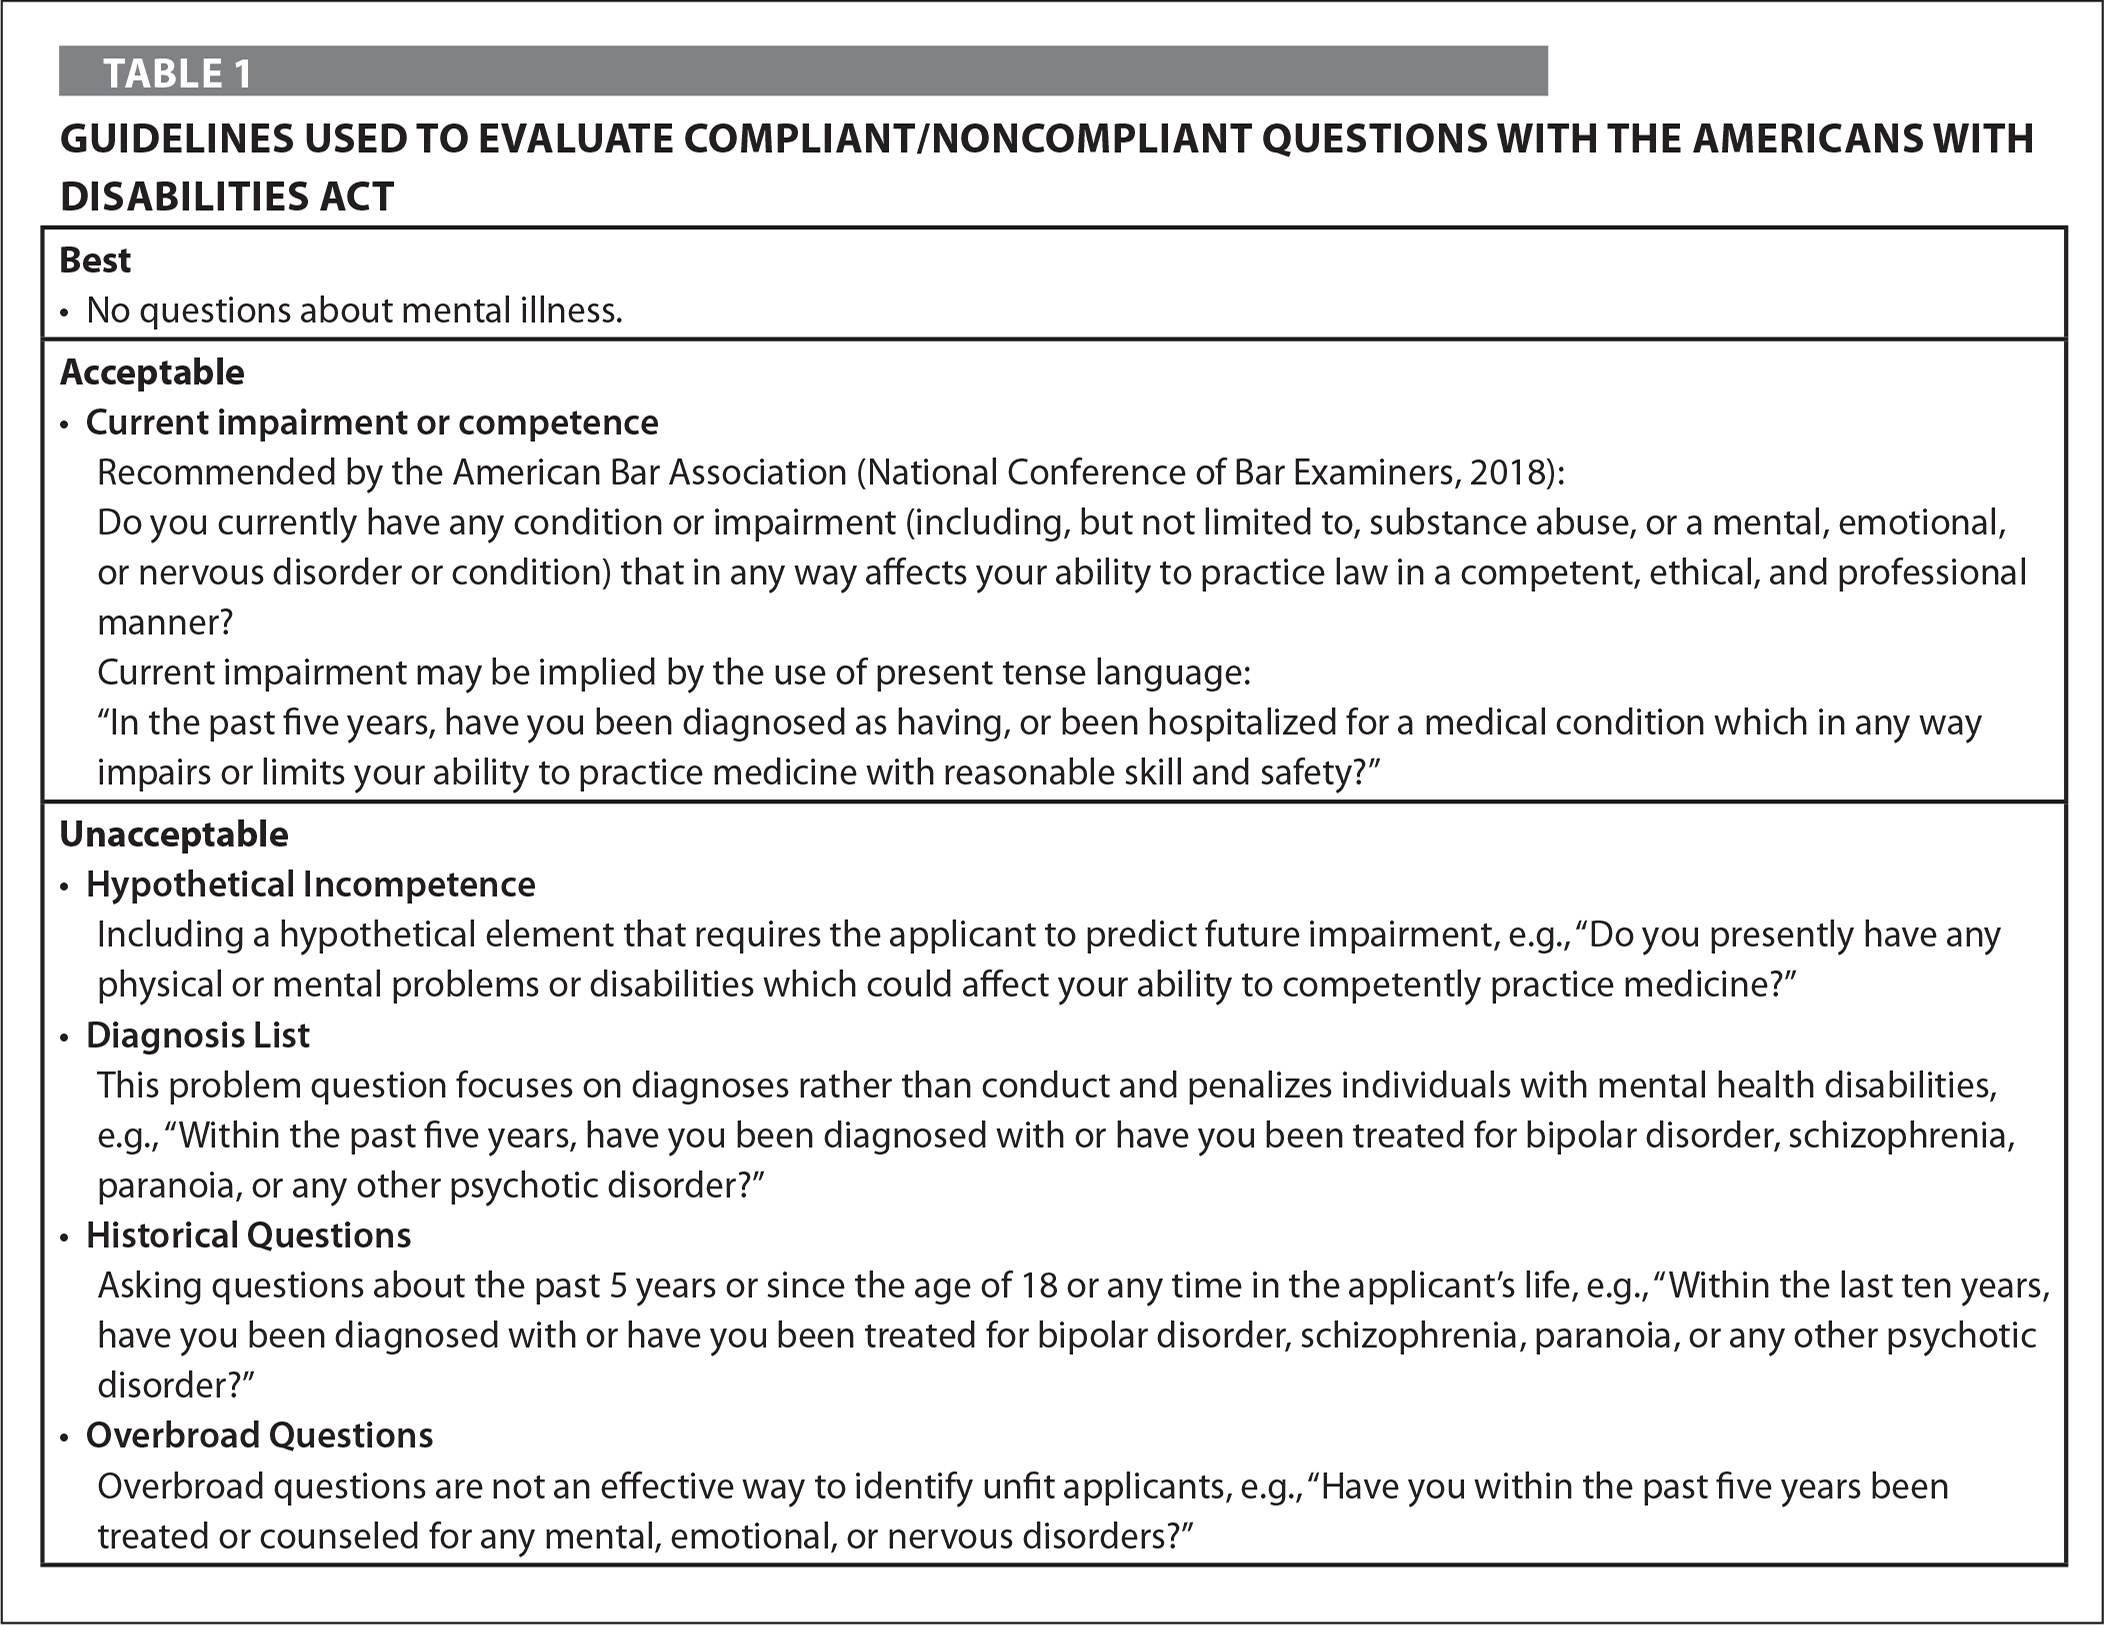 Guidelines Used to Evaluate Compliant/Noncompliant Questions with the Americans with Disabilities Act